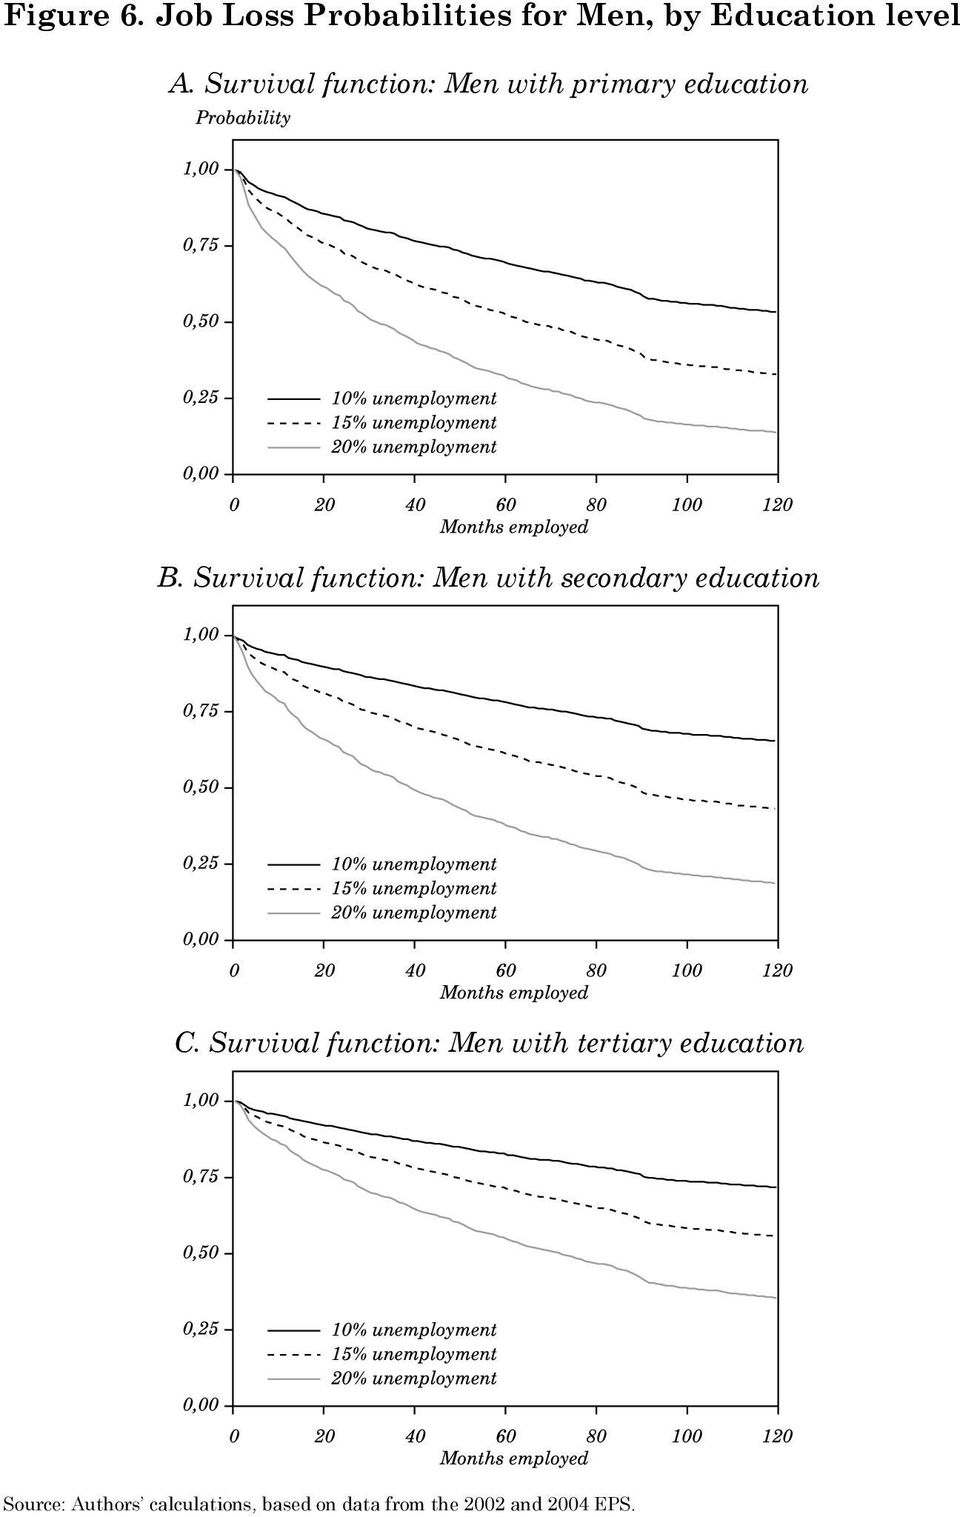 Survival function: Men with secondary education C.